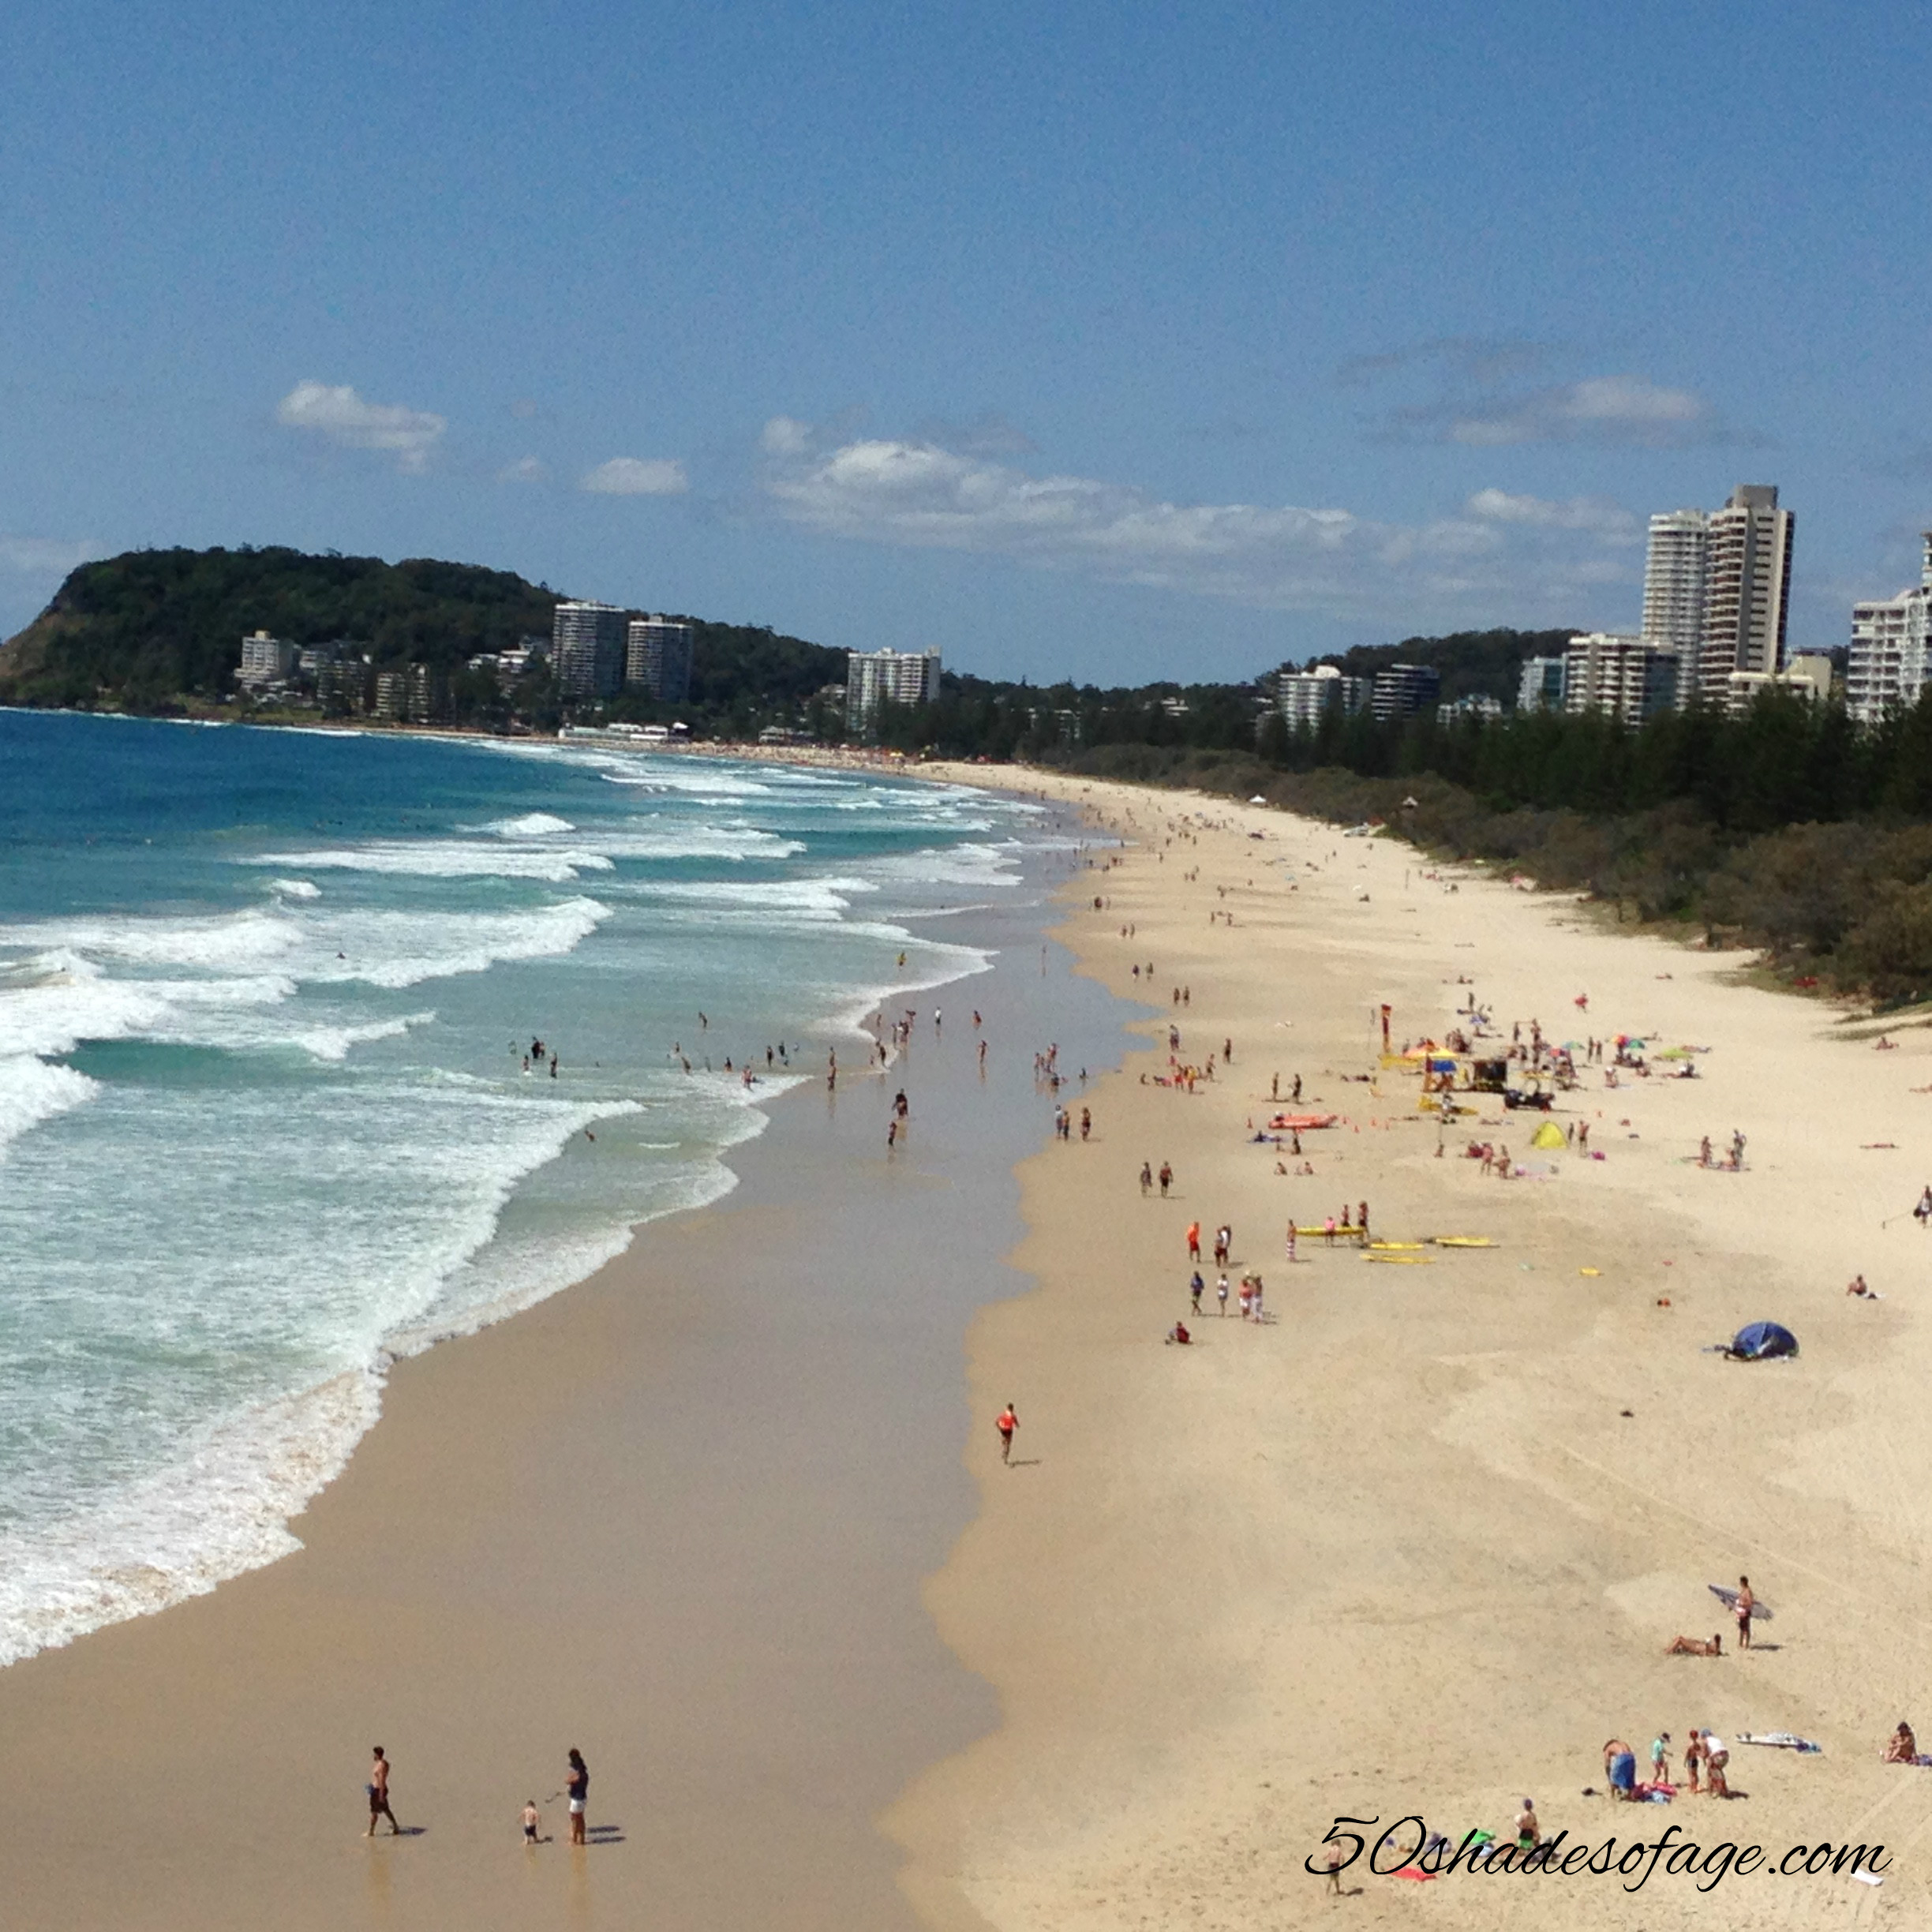 View of North Burleigh Beach